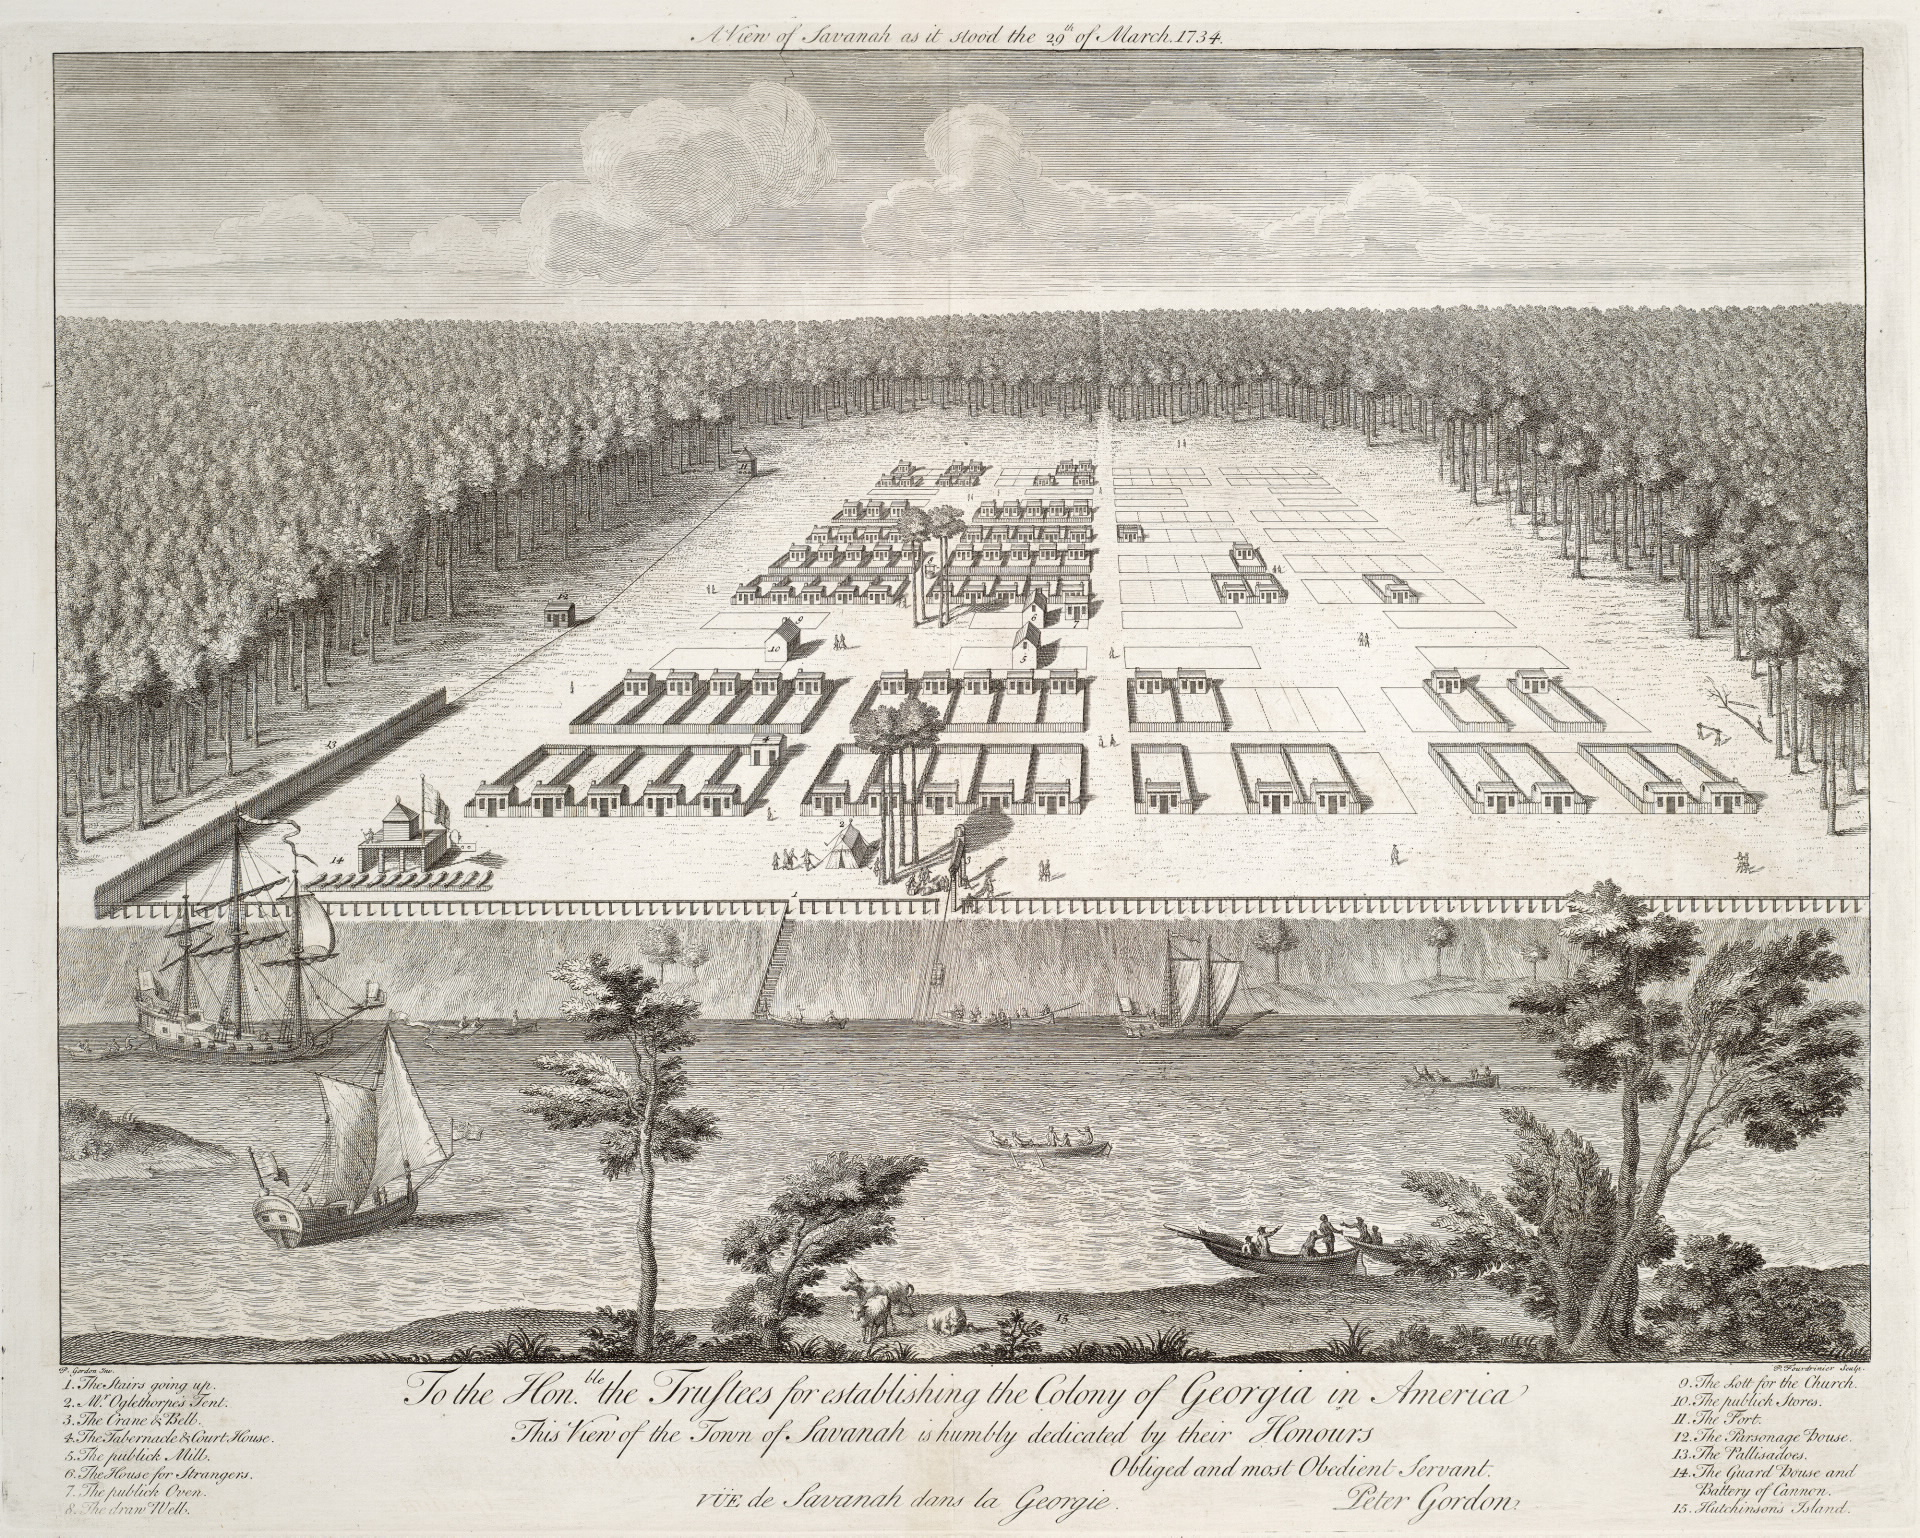 A view of Savanah as it stood the 29th of March 1734 by Pierre Fourdrinier and James Oglethorpe; currently at the Toronto Public Library.